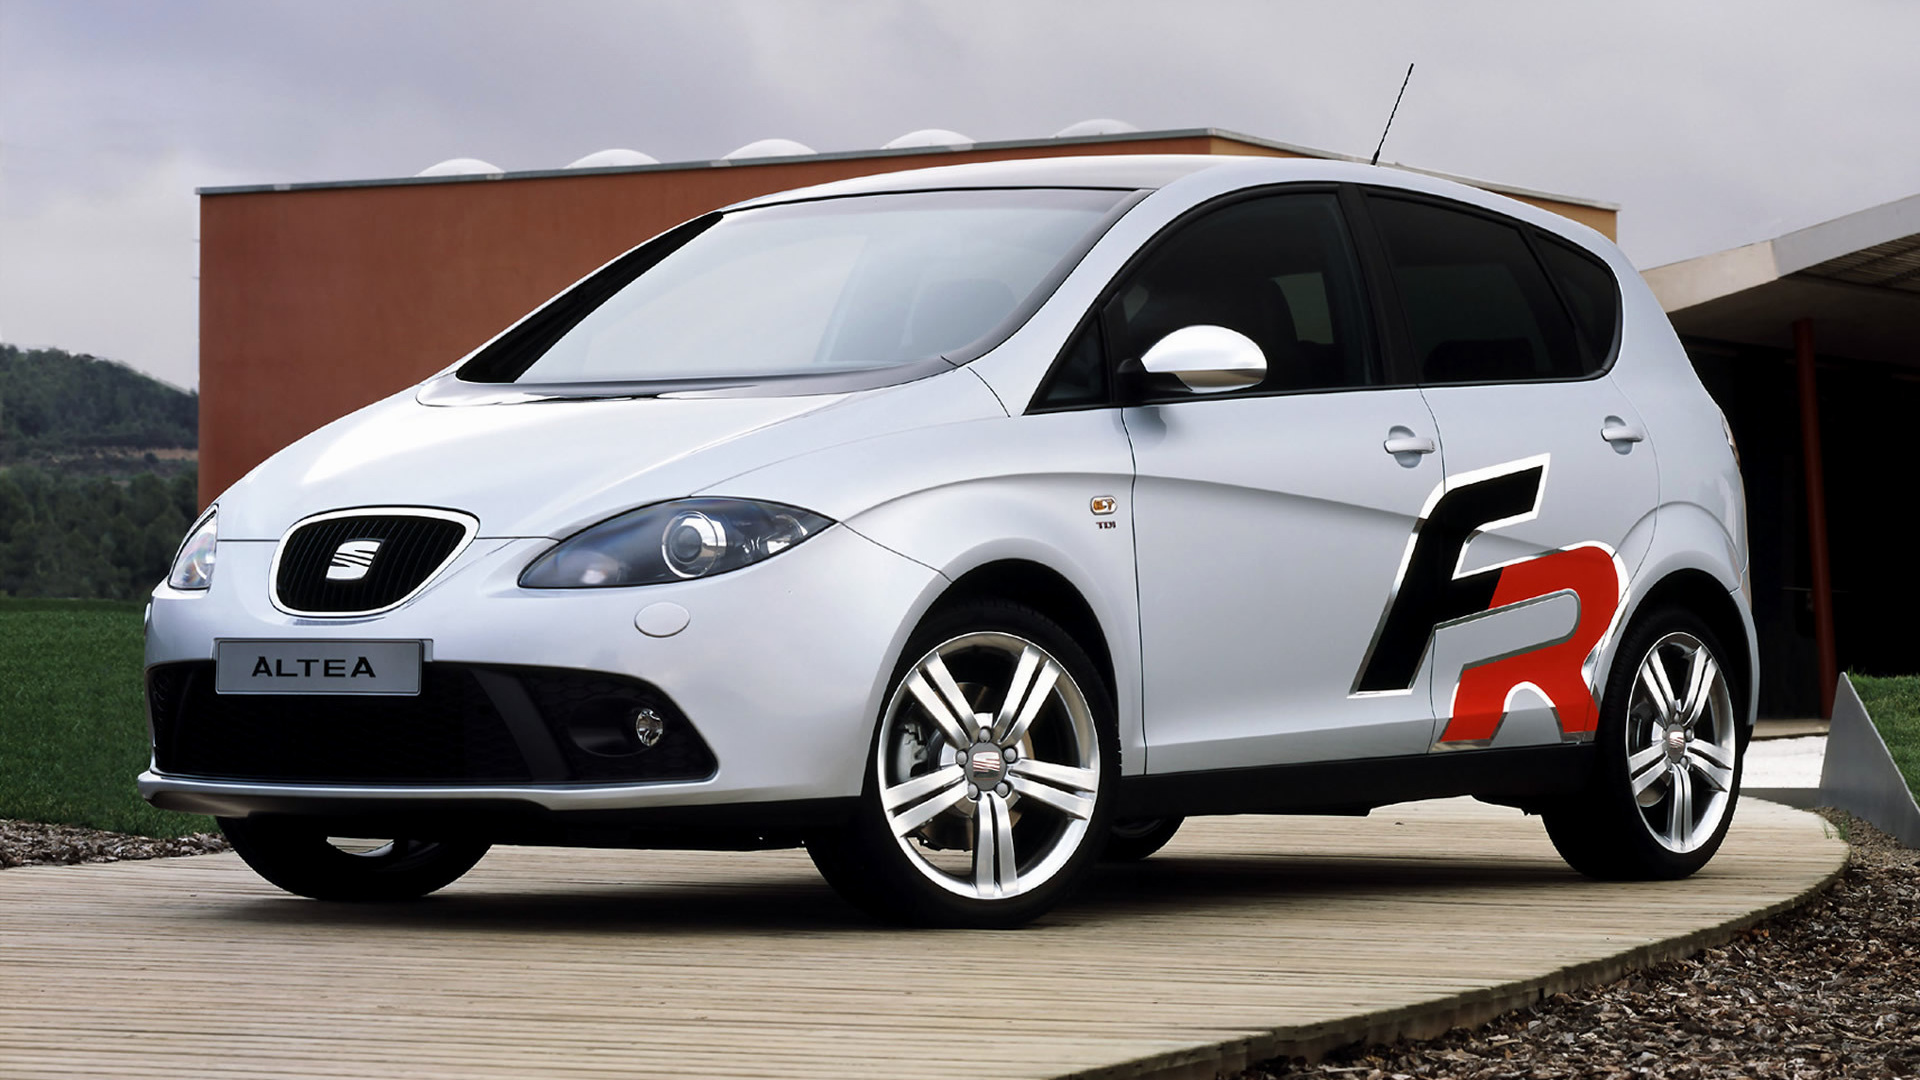 2005 Seat Altea Fr Concept Wallpapers And Hd Images